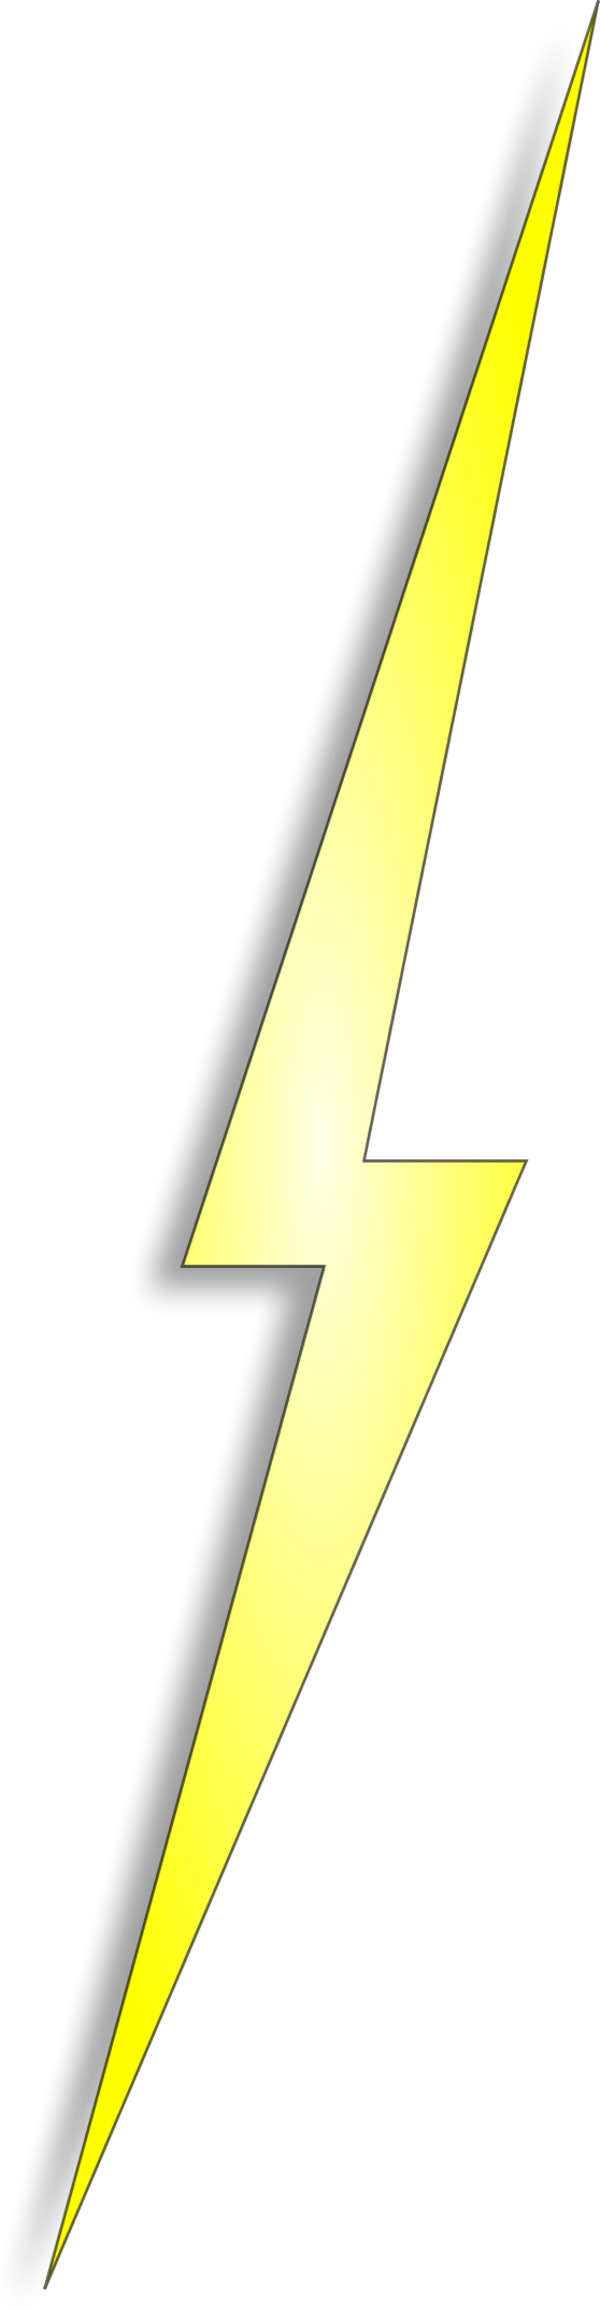 Lightning clipart electric sign. Free thunder and download